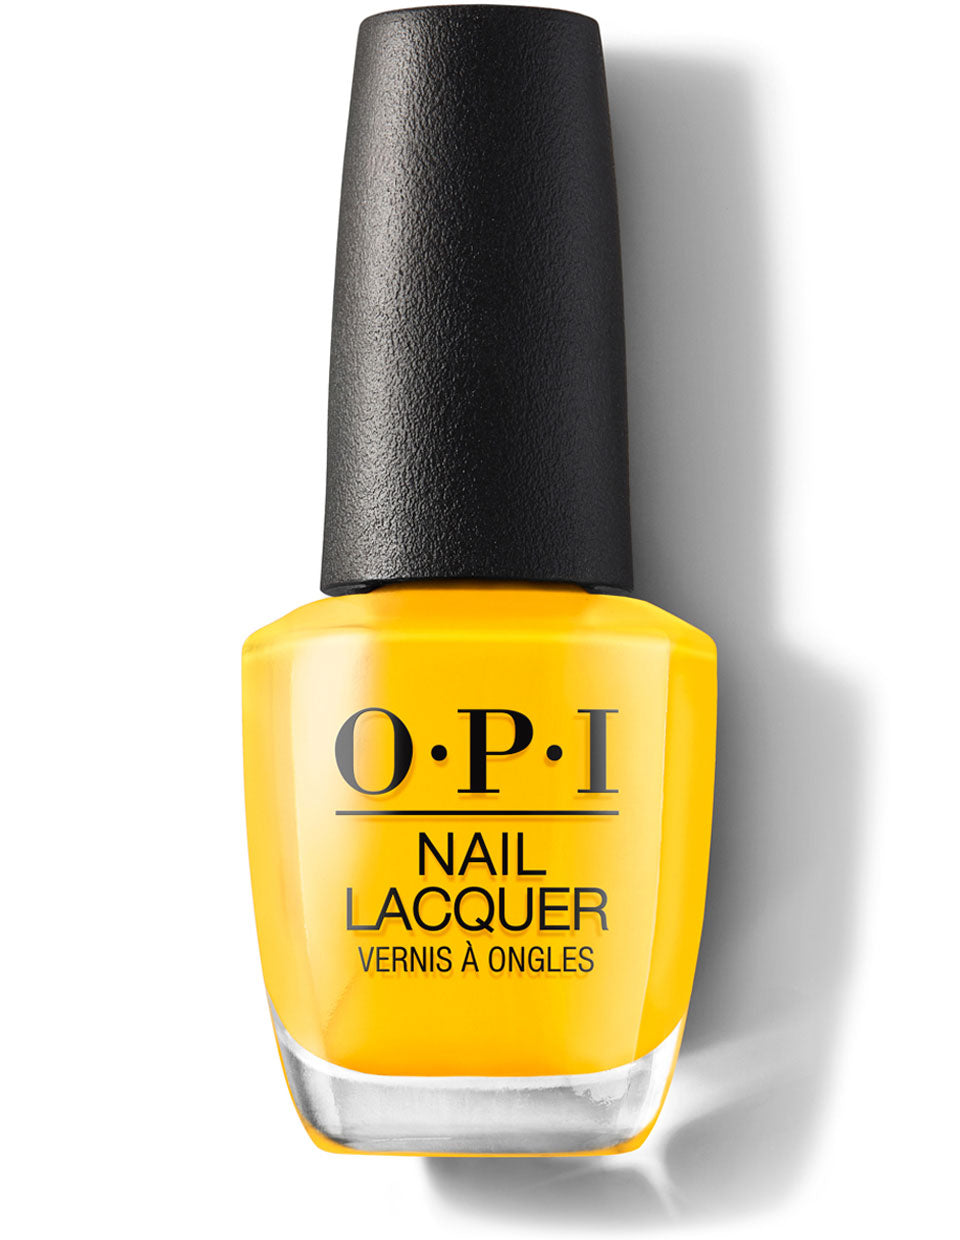 OPI Nail Lacquer Sun, Sea And Sand In My Pants (15ml)